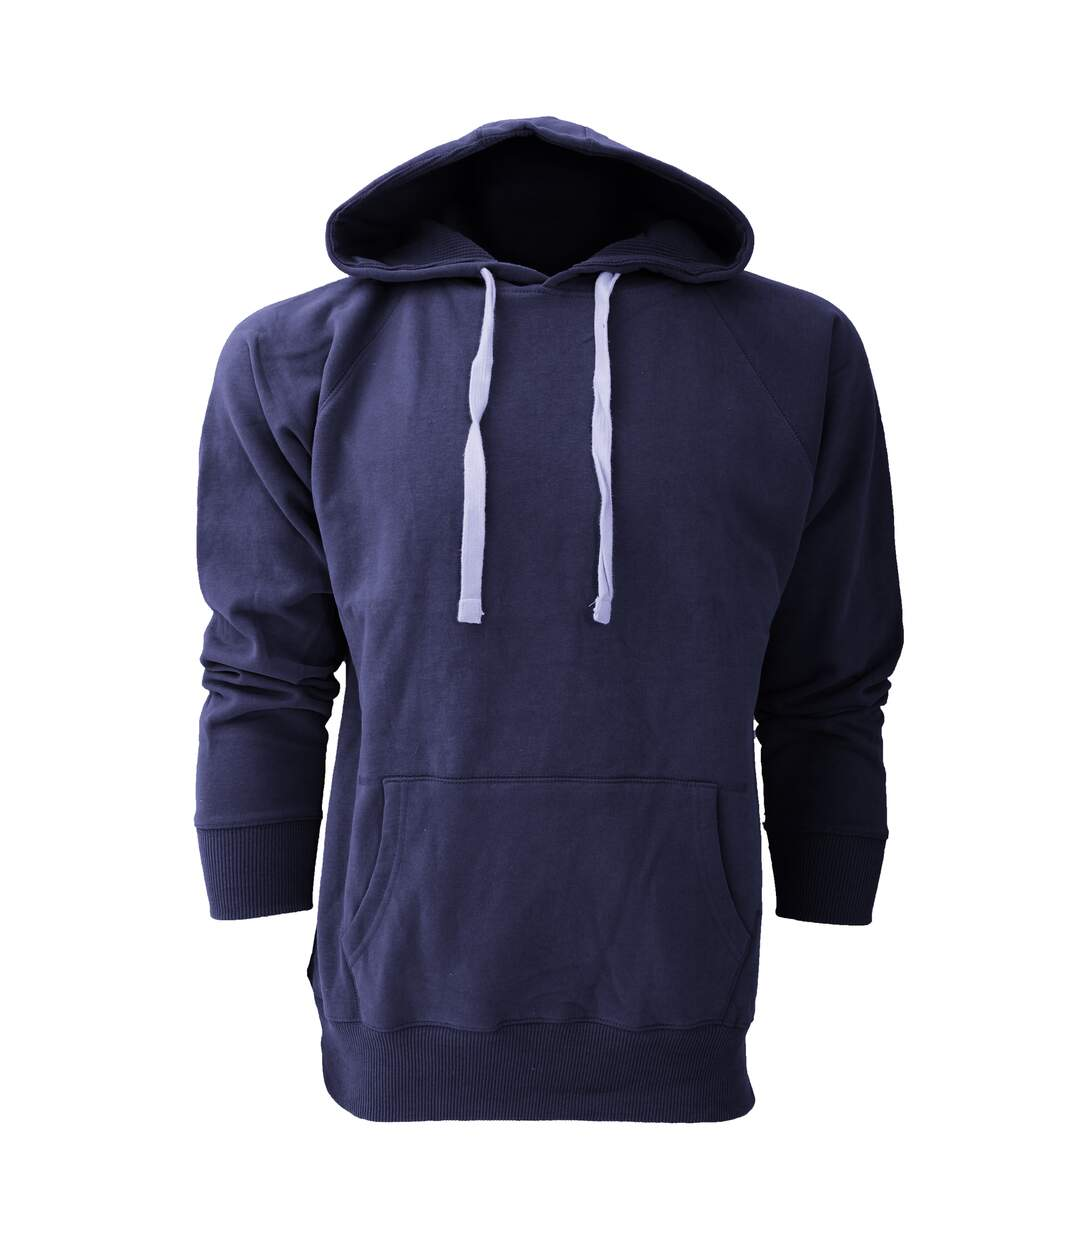 Mantis Mens Superstar Hoodie / Hooded Sweatshirt (Swiss Navy) - UTBC679